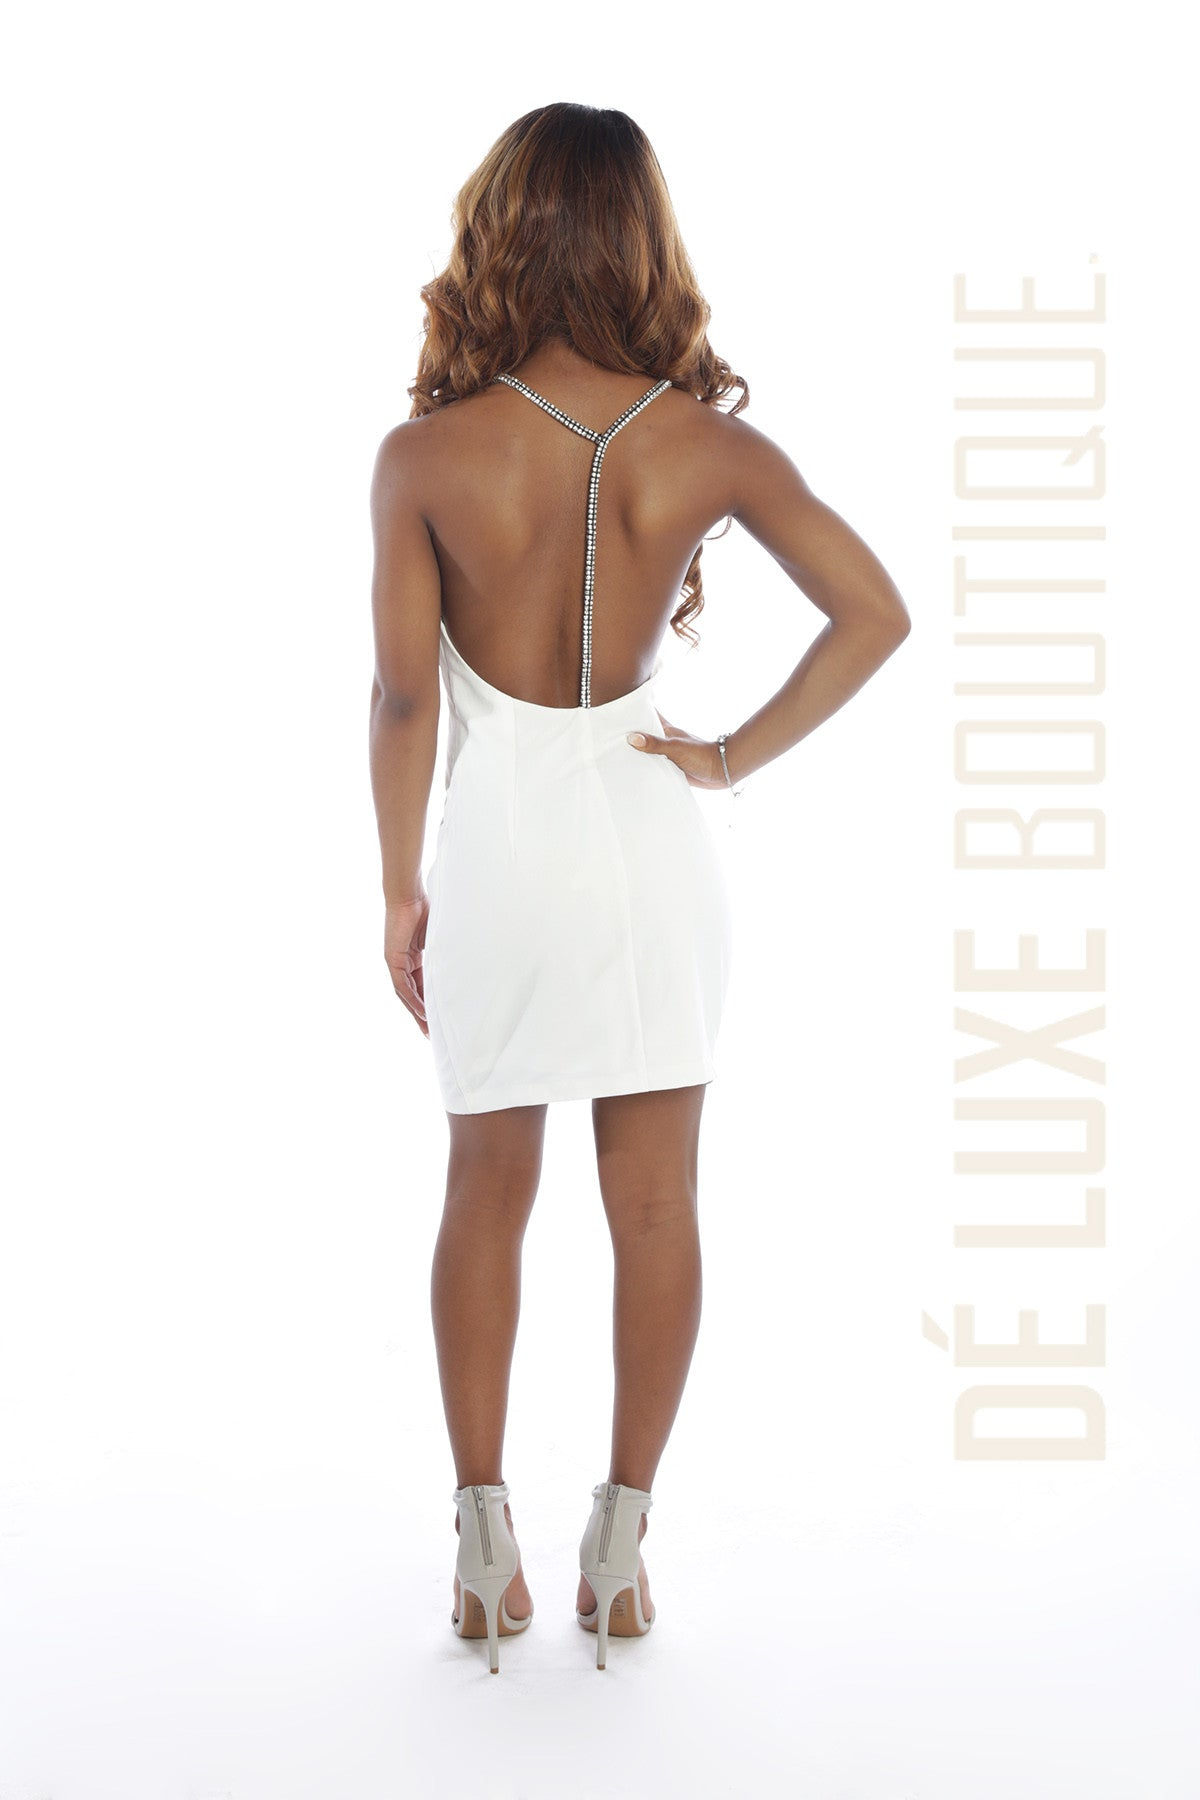 Embellished Strappy Mini Dress - The Dé Luxe Boutique